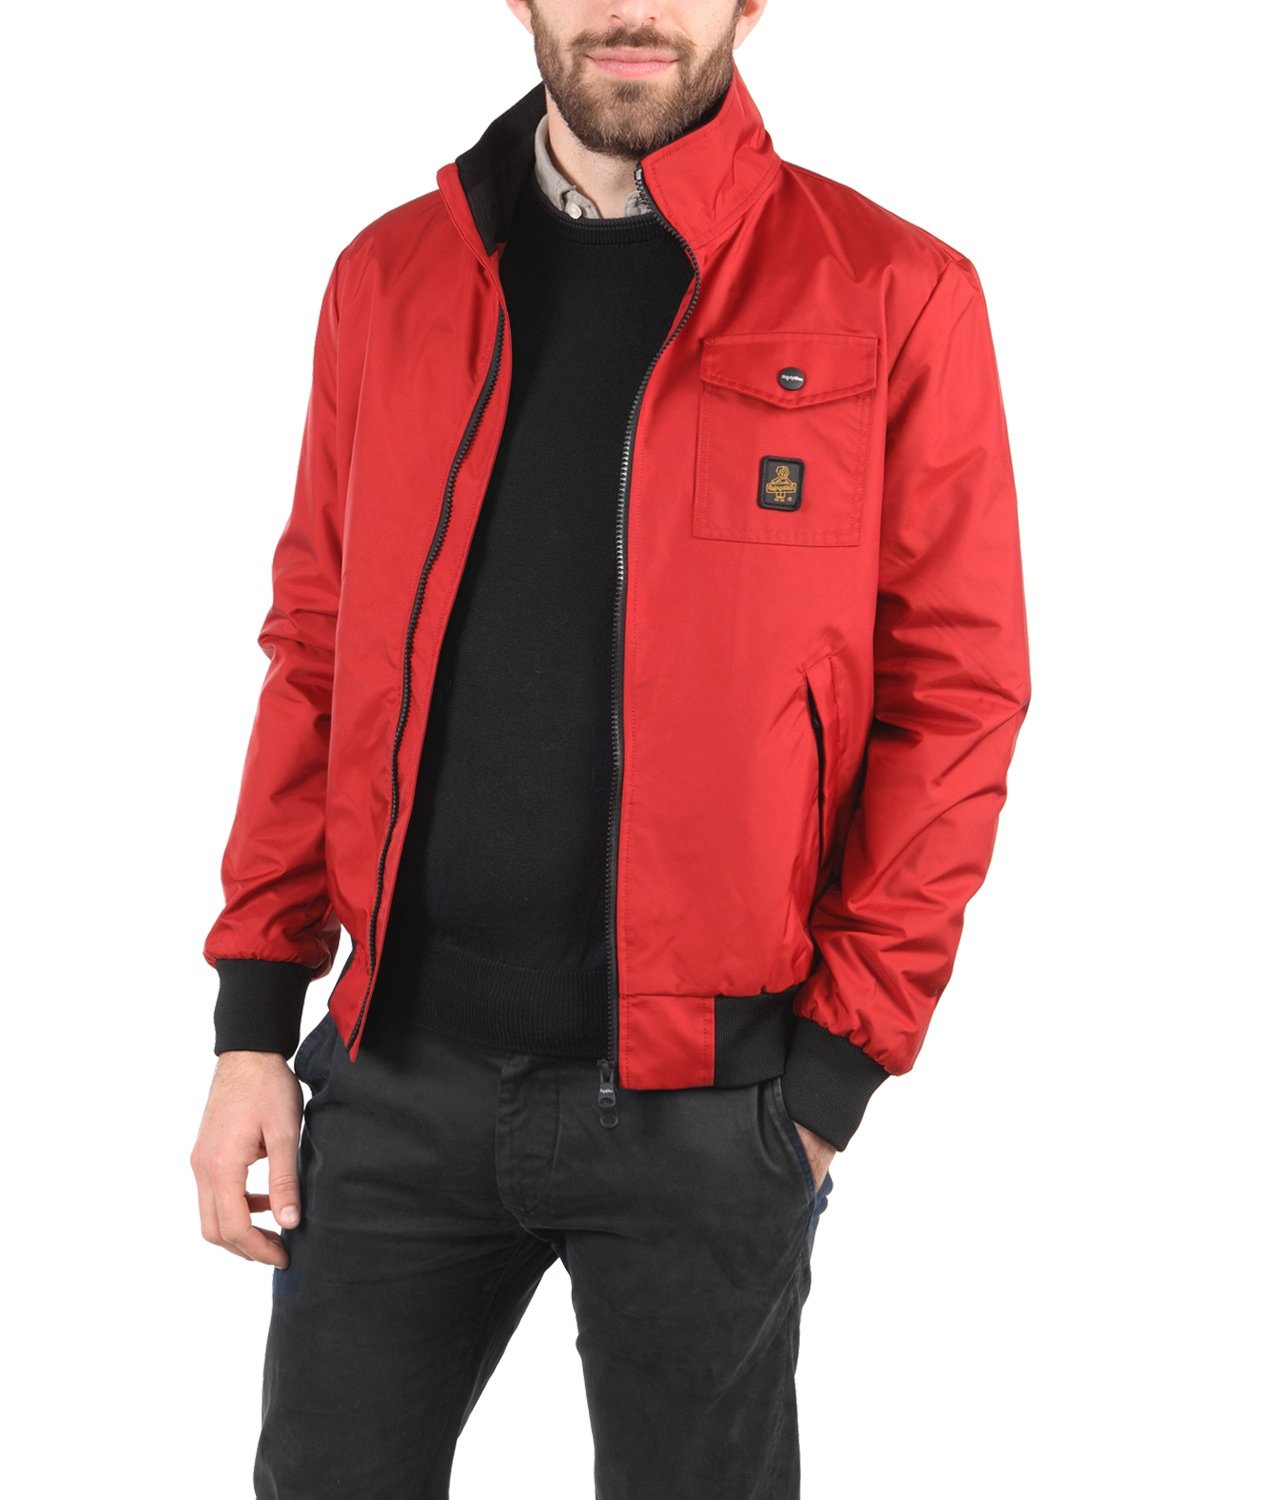 CAPTAIN/1 JACKET